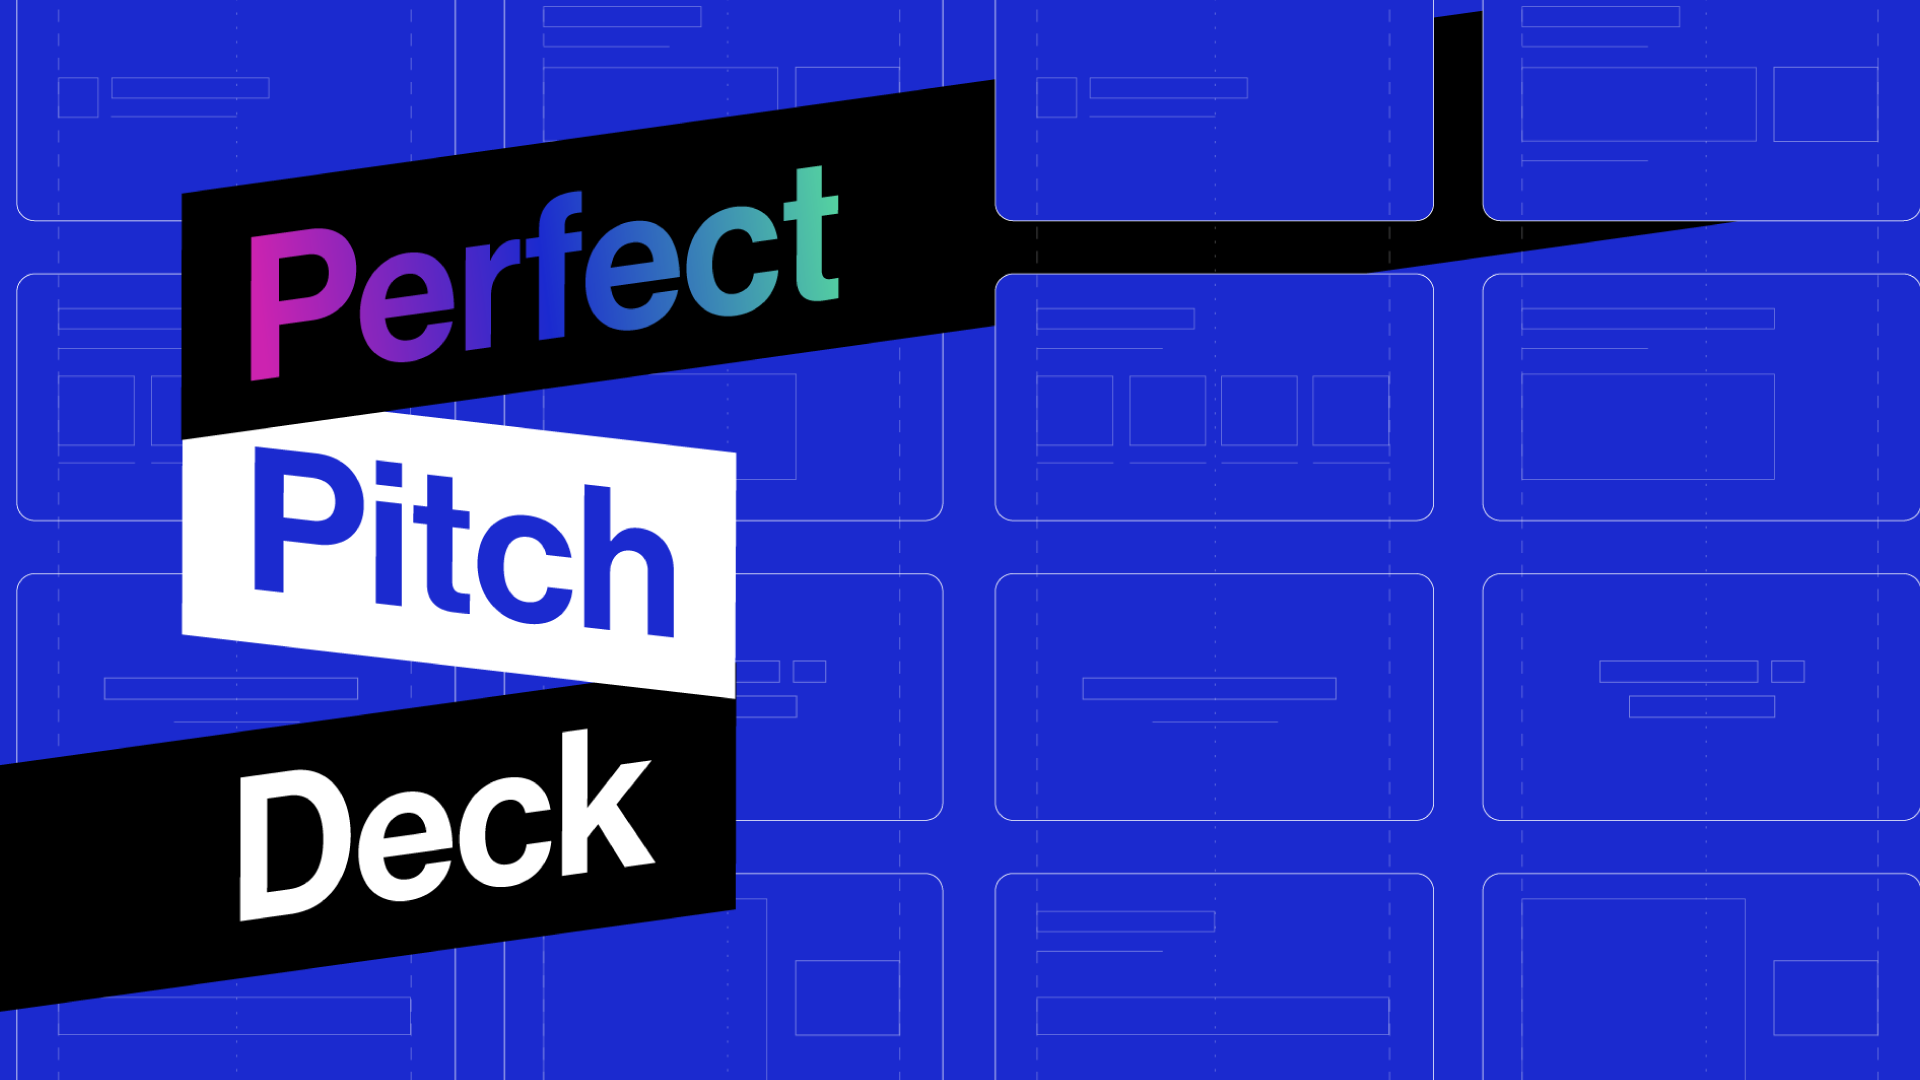 Does the perfect pitch deck structure actually exist?